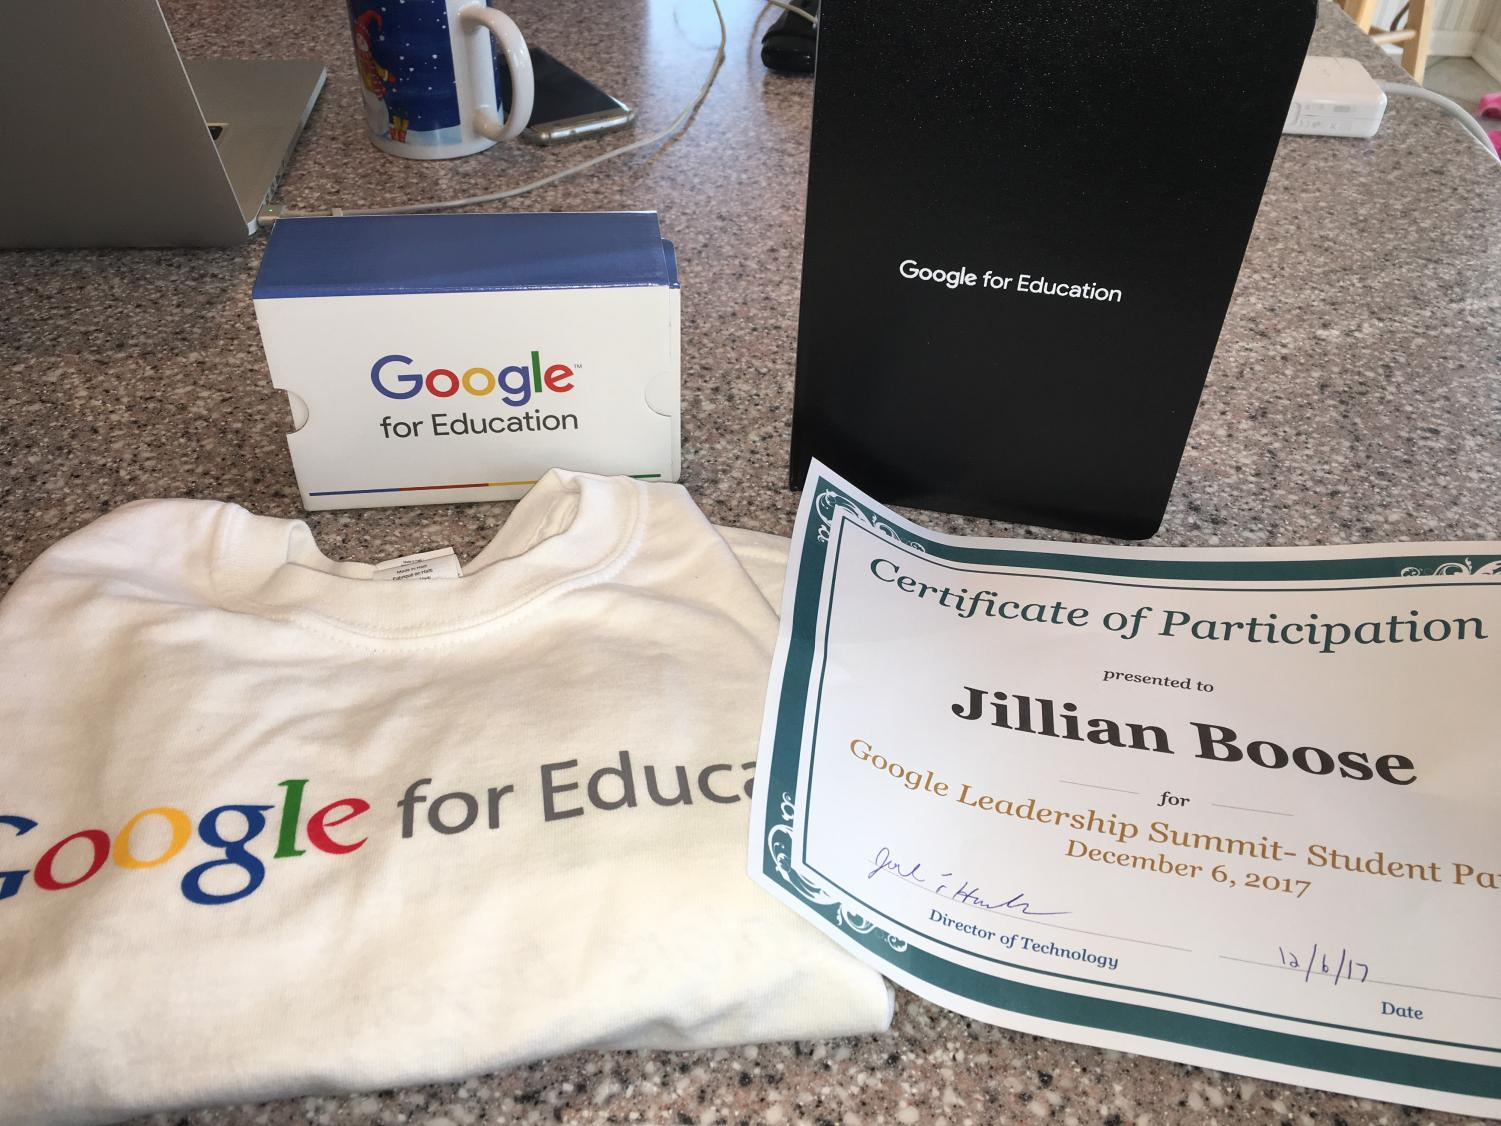 The goodies were aplenty for Goggle Summit attendees such as Jillian Boose.